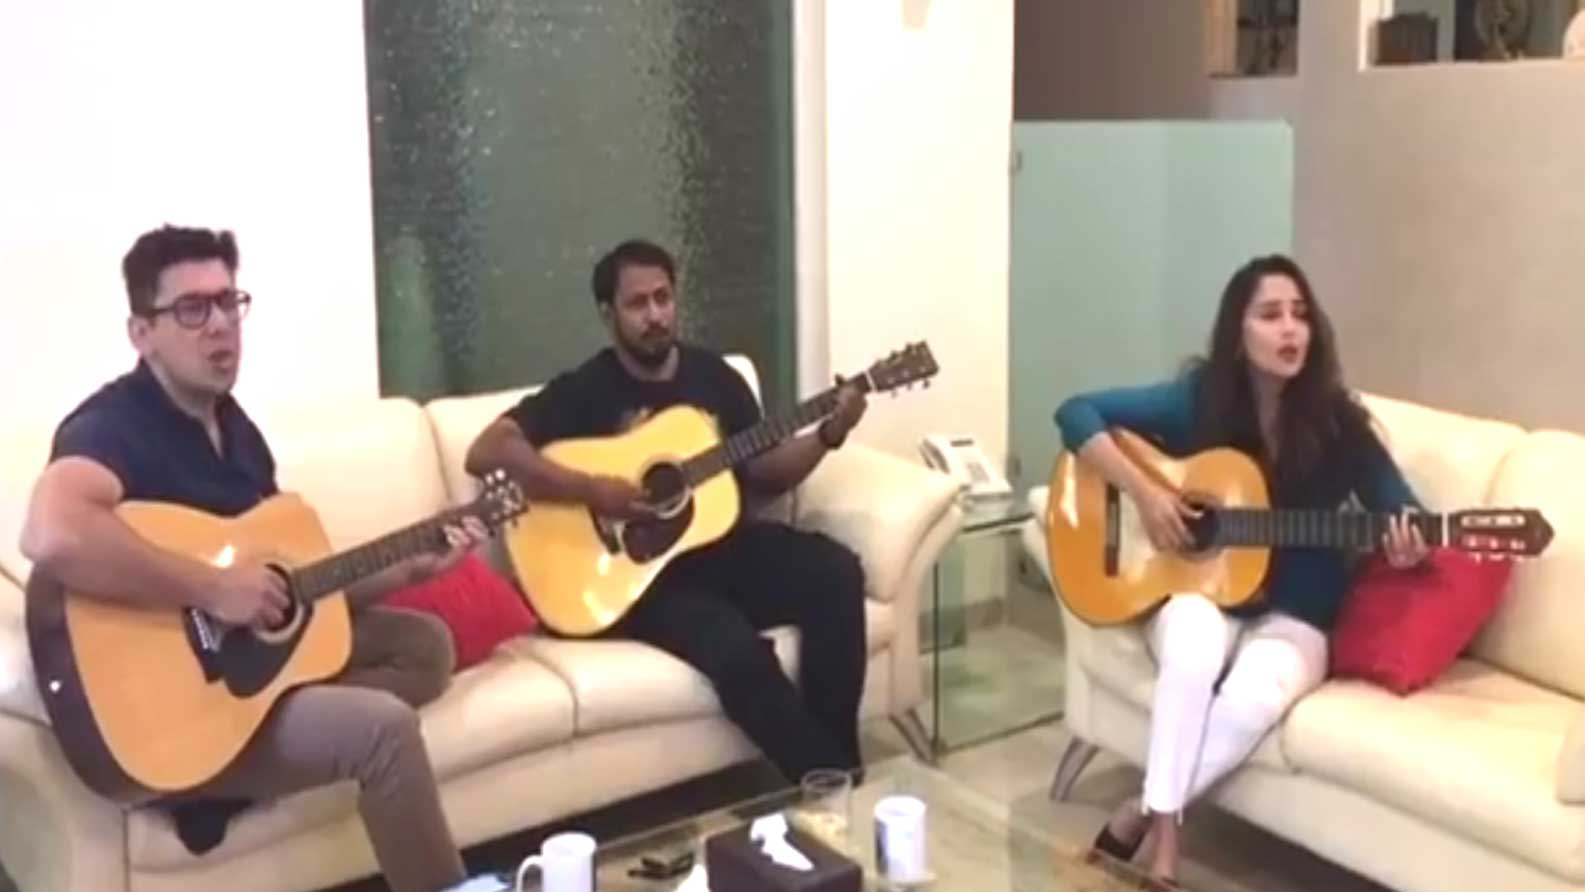 Madhuri Dixit jamming with hubby Sriram Nene will set your weekend mood right!